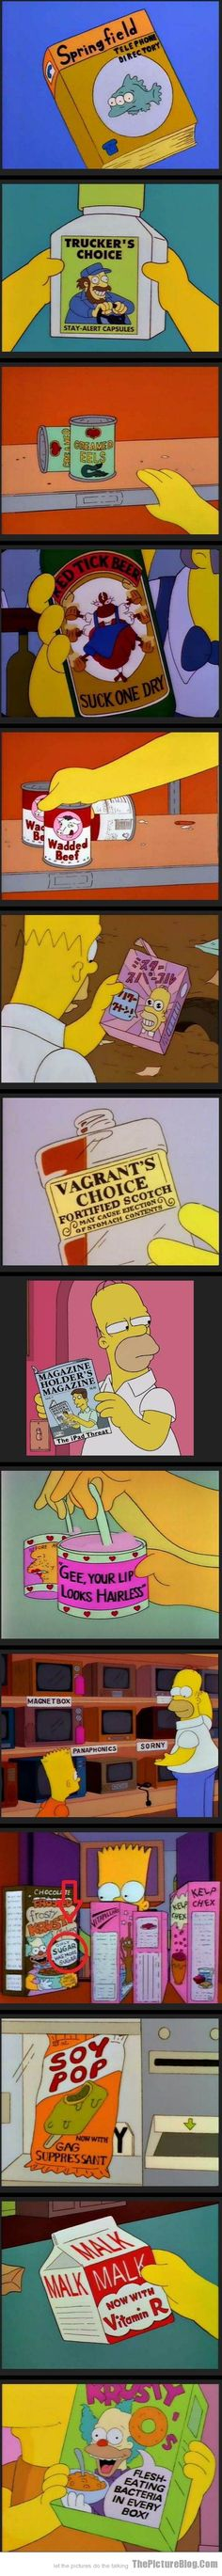 Funny Products found in The Simpsons Part 2